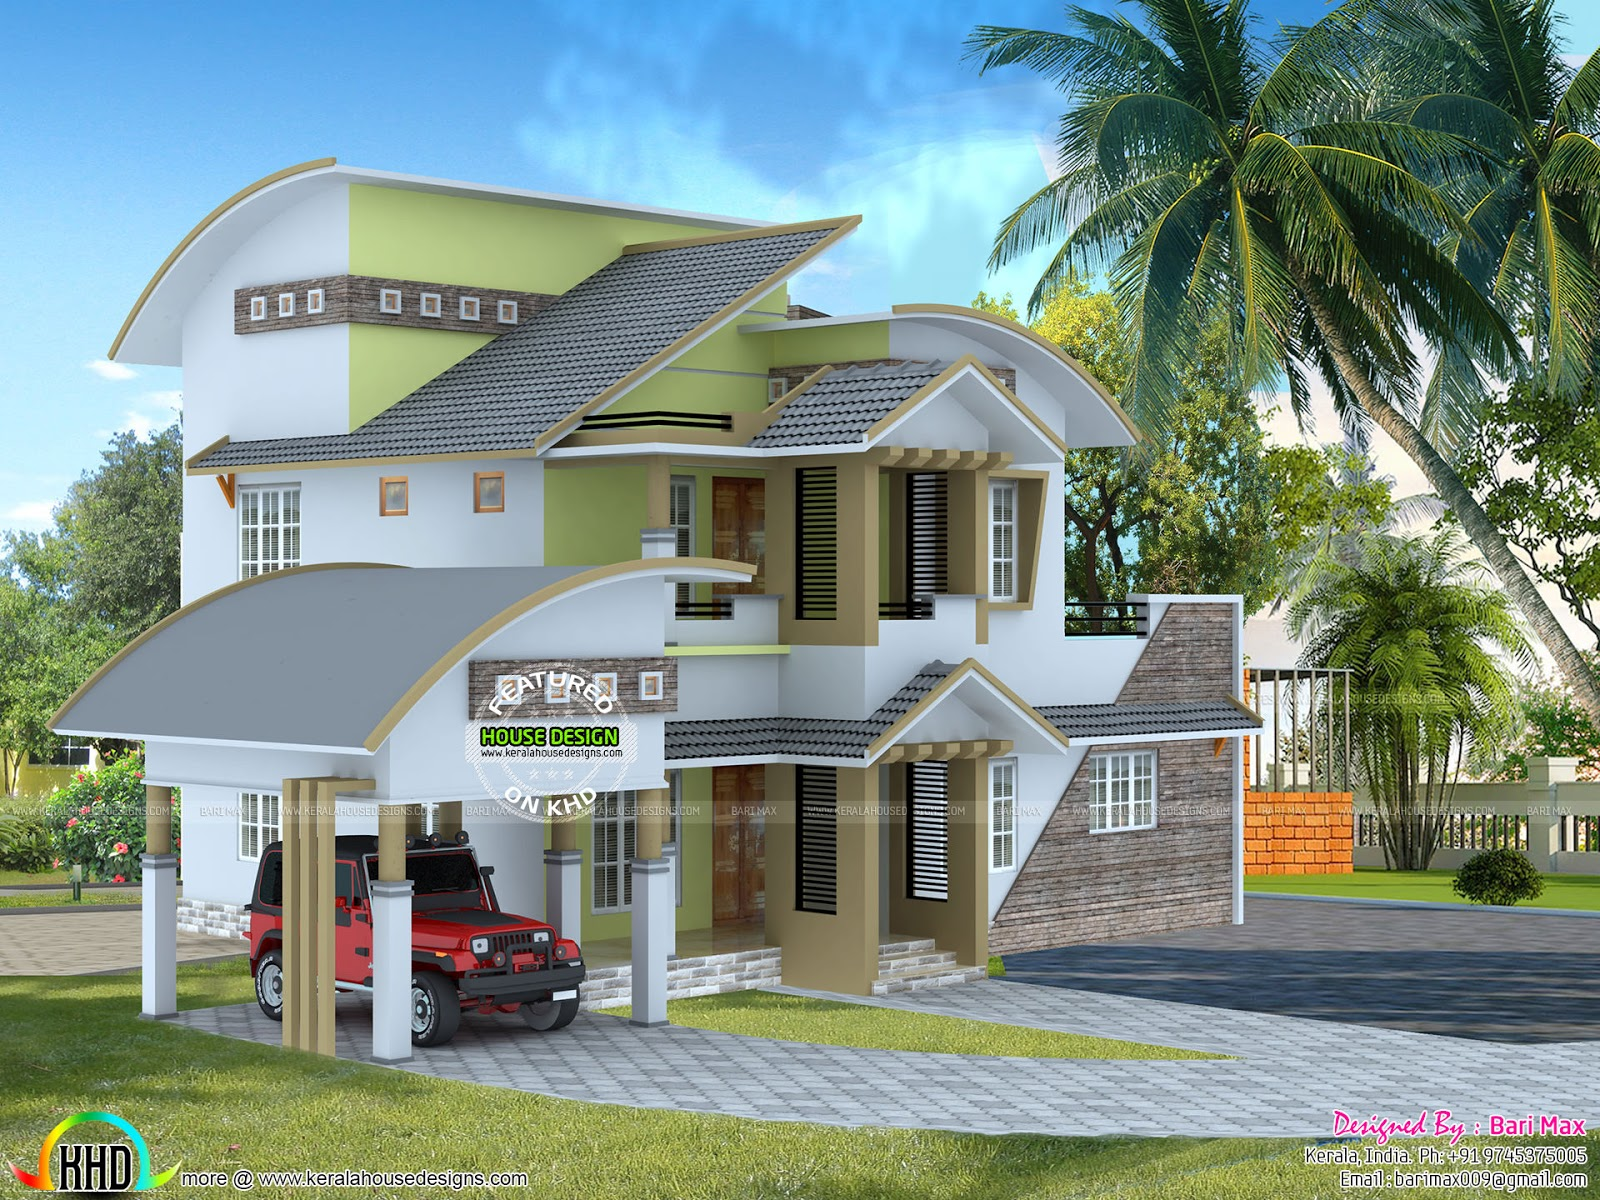 2050 sq ft modern home kerala home design and floor plans for Architecture 2050